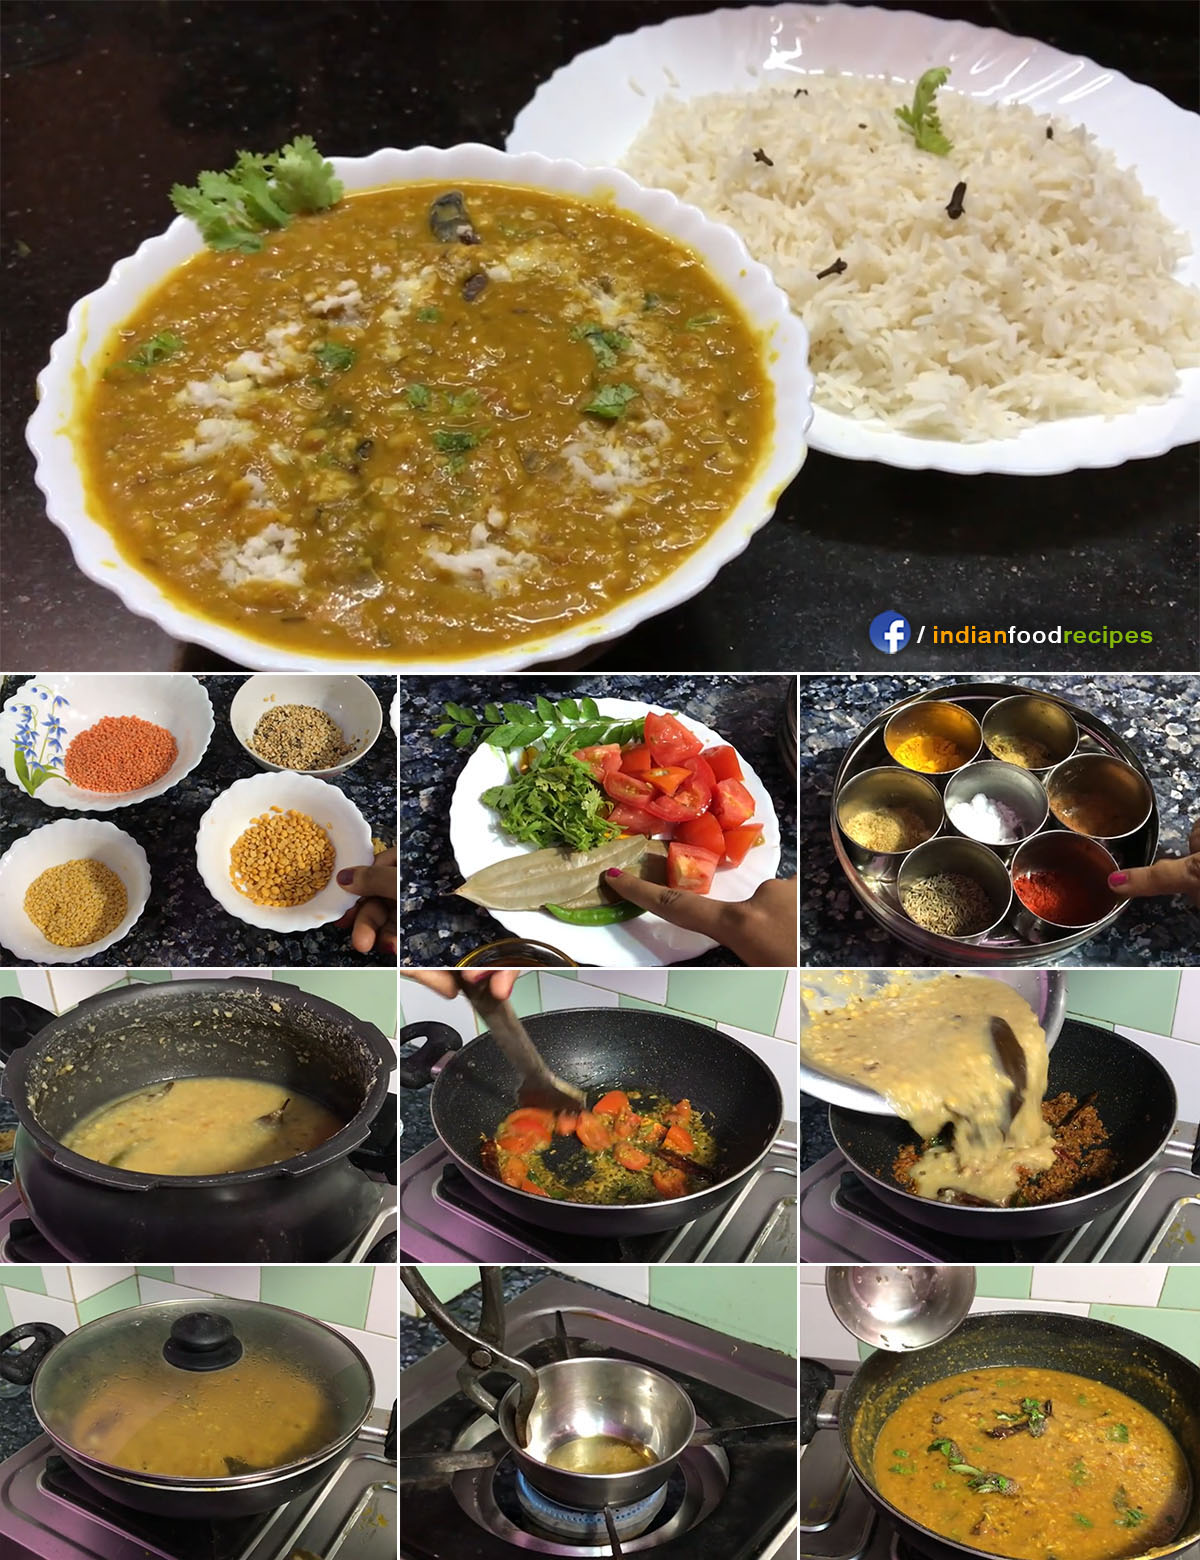 Authentic Rajasthani Panchmel Dal Fry Tadka recipe step by step pictures